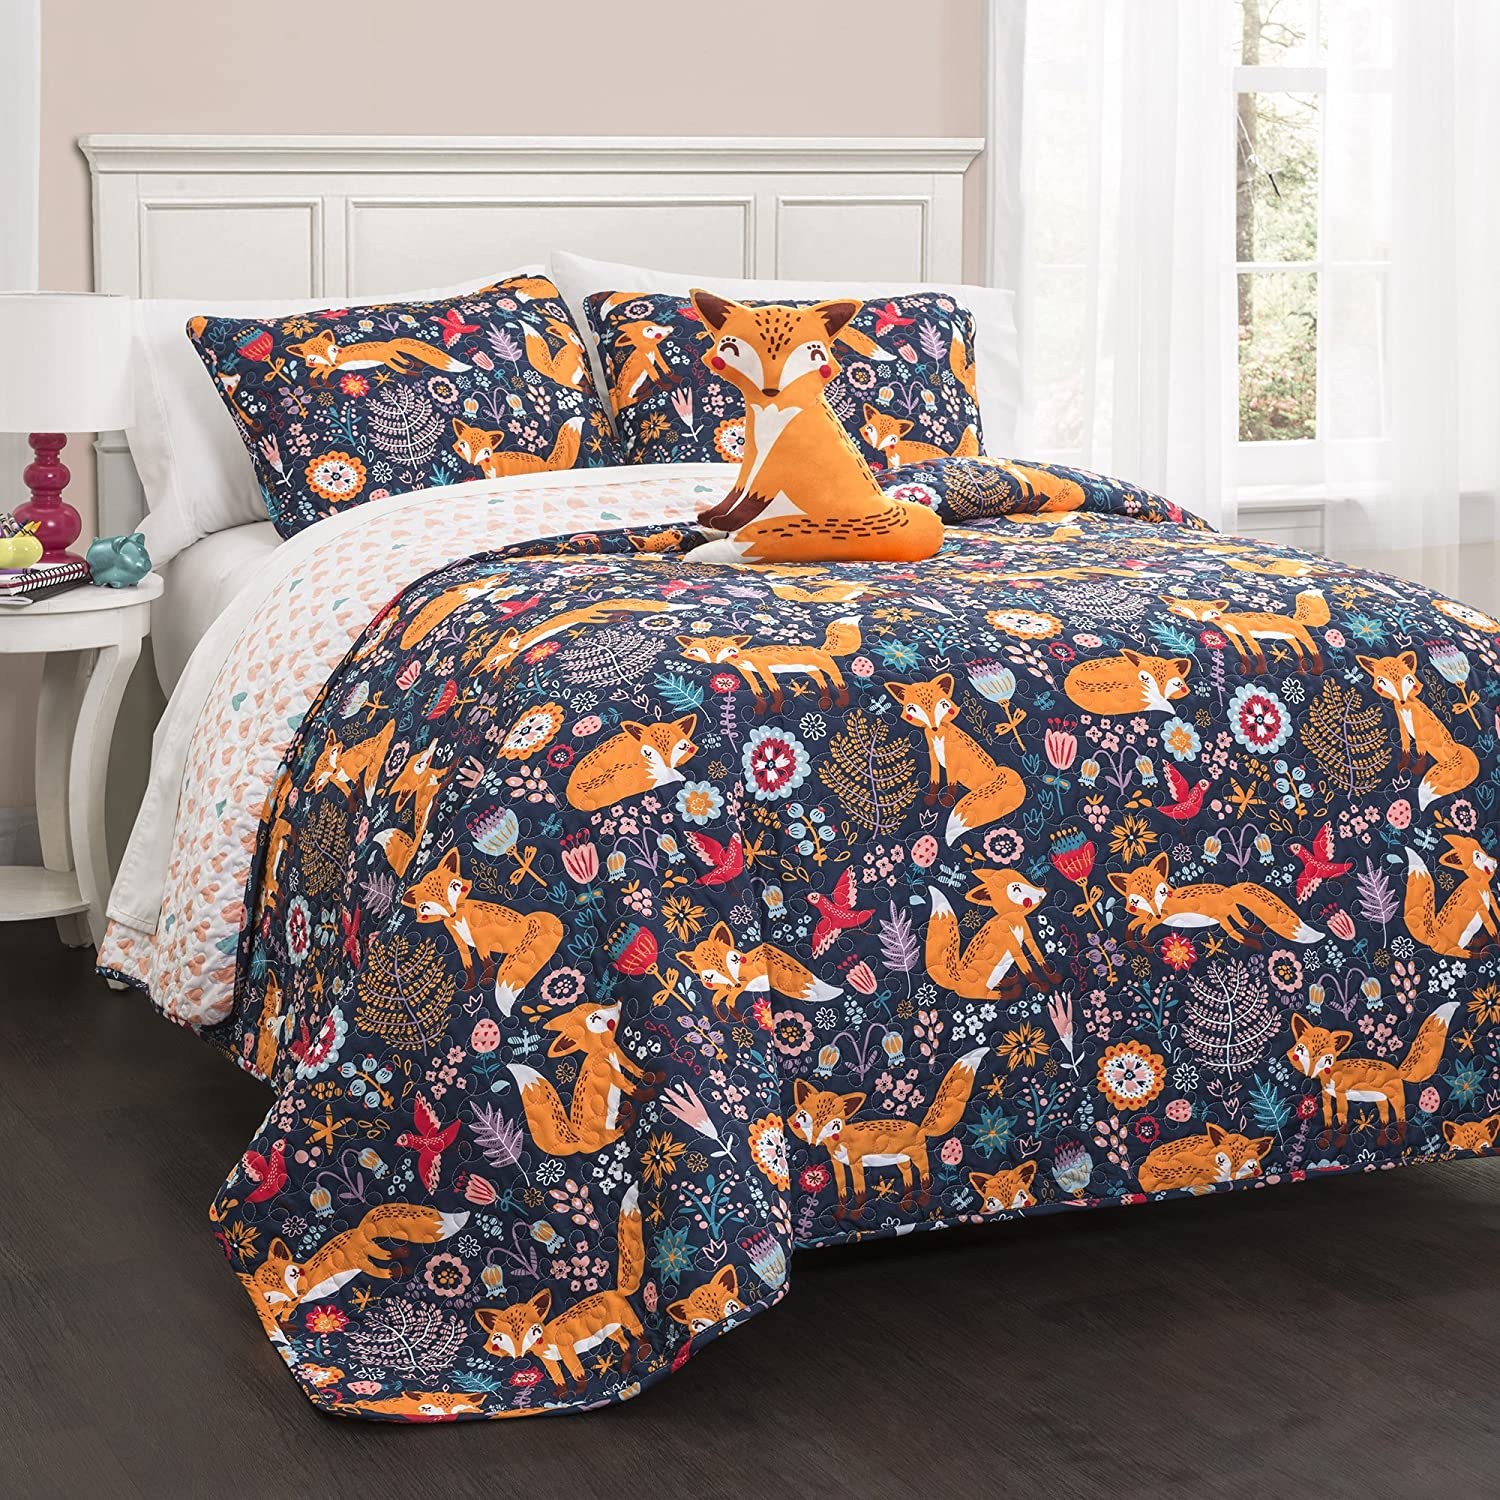 Lush Decor 16T000548 Pixie Fox 3 Piece Quilt Set,Navy,Twin Triangle Home Fashions